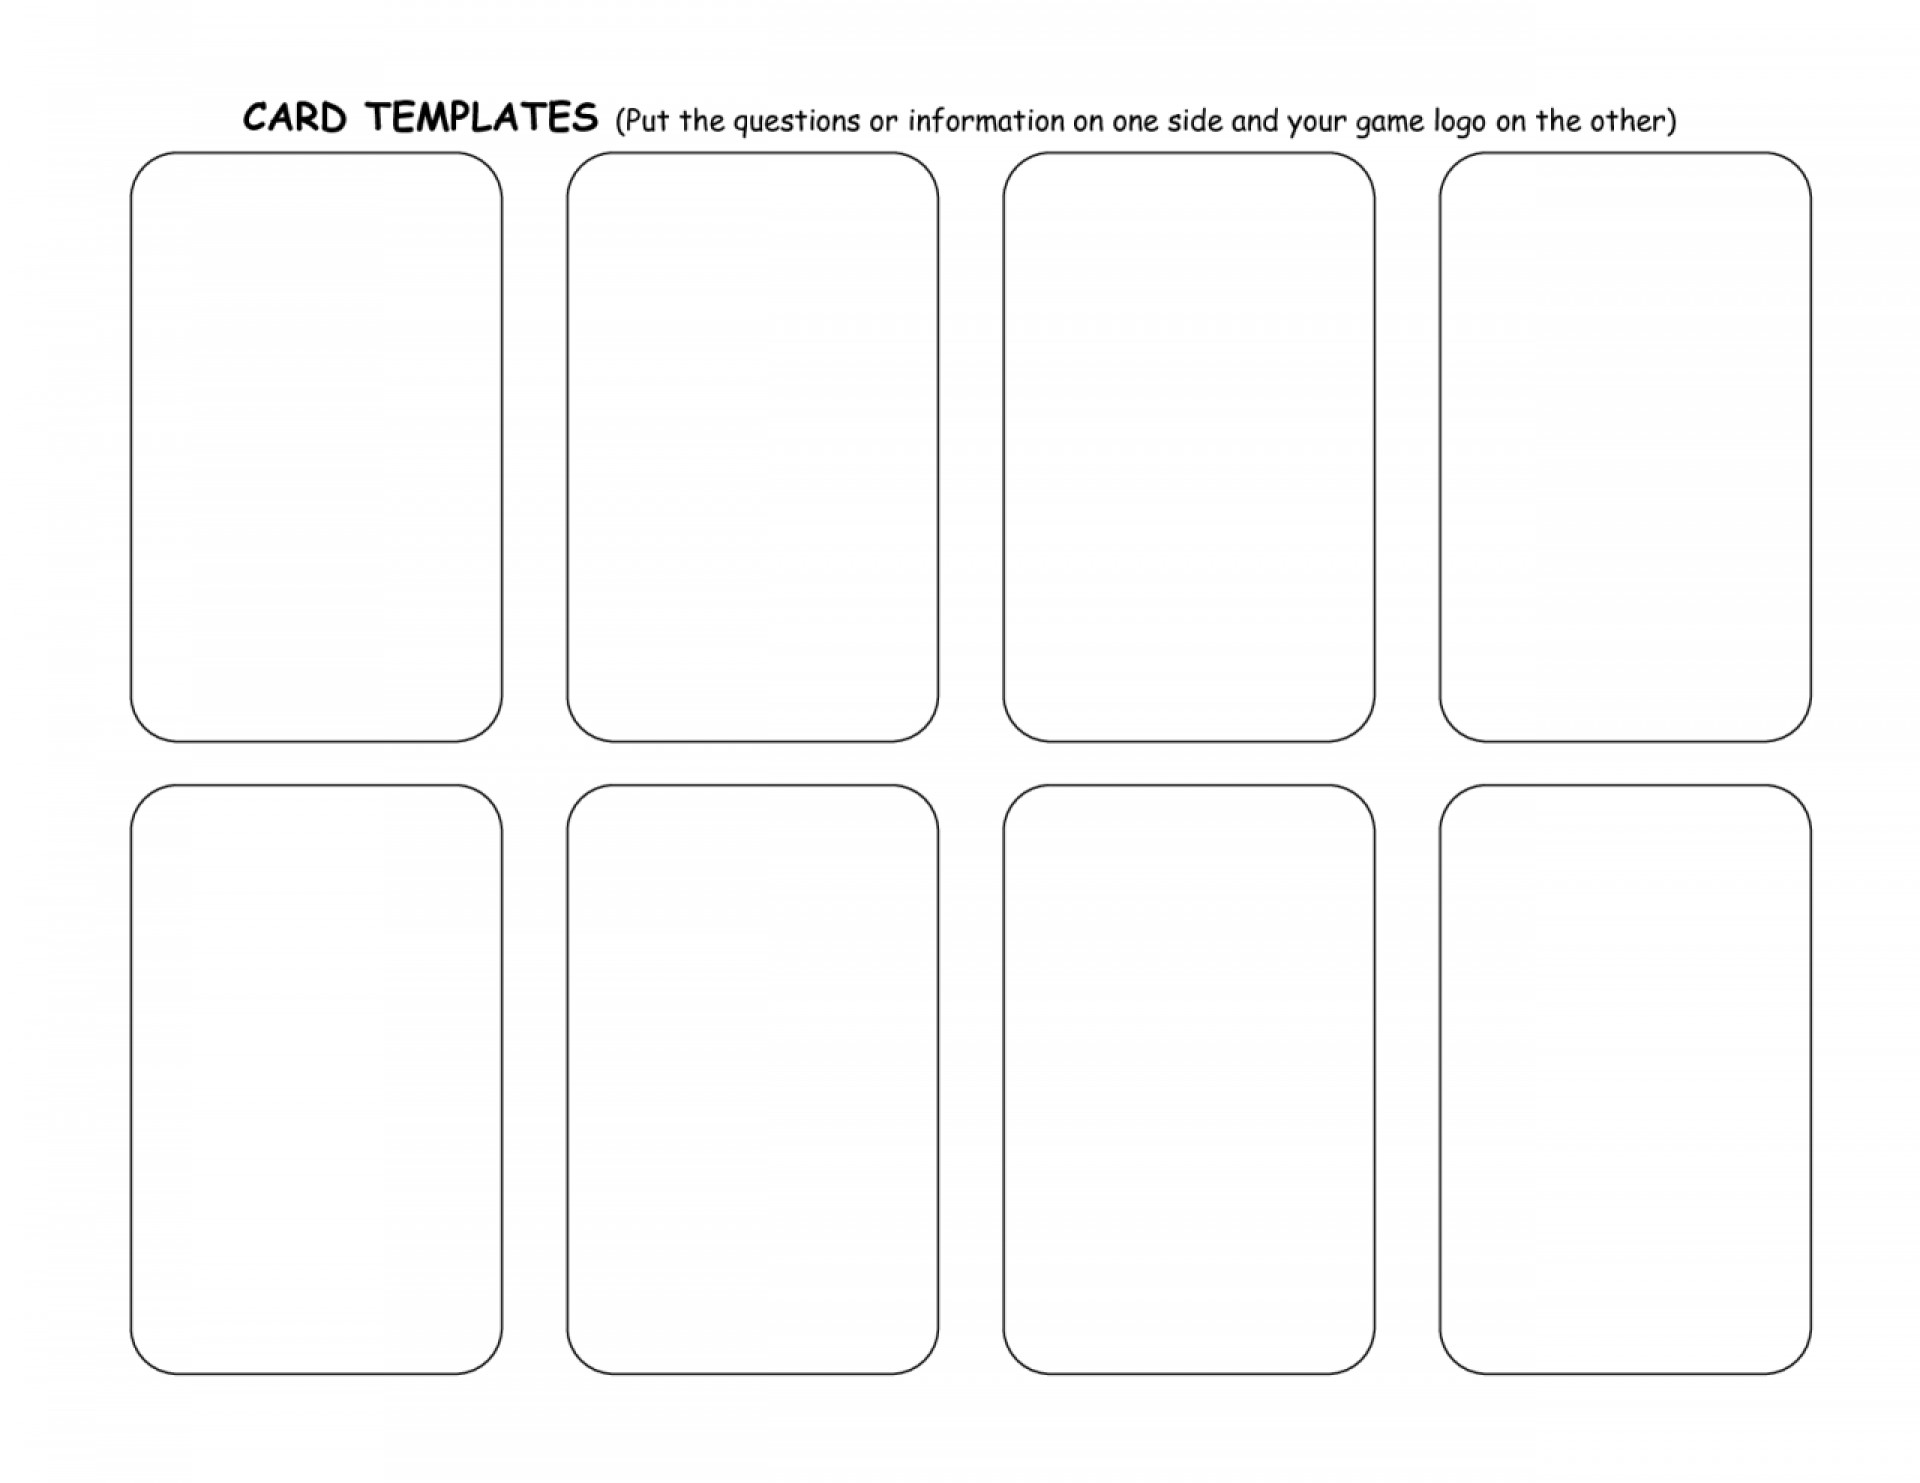 004 Unbelievable Trading Card Template Free High Def  Maker Online1920